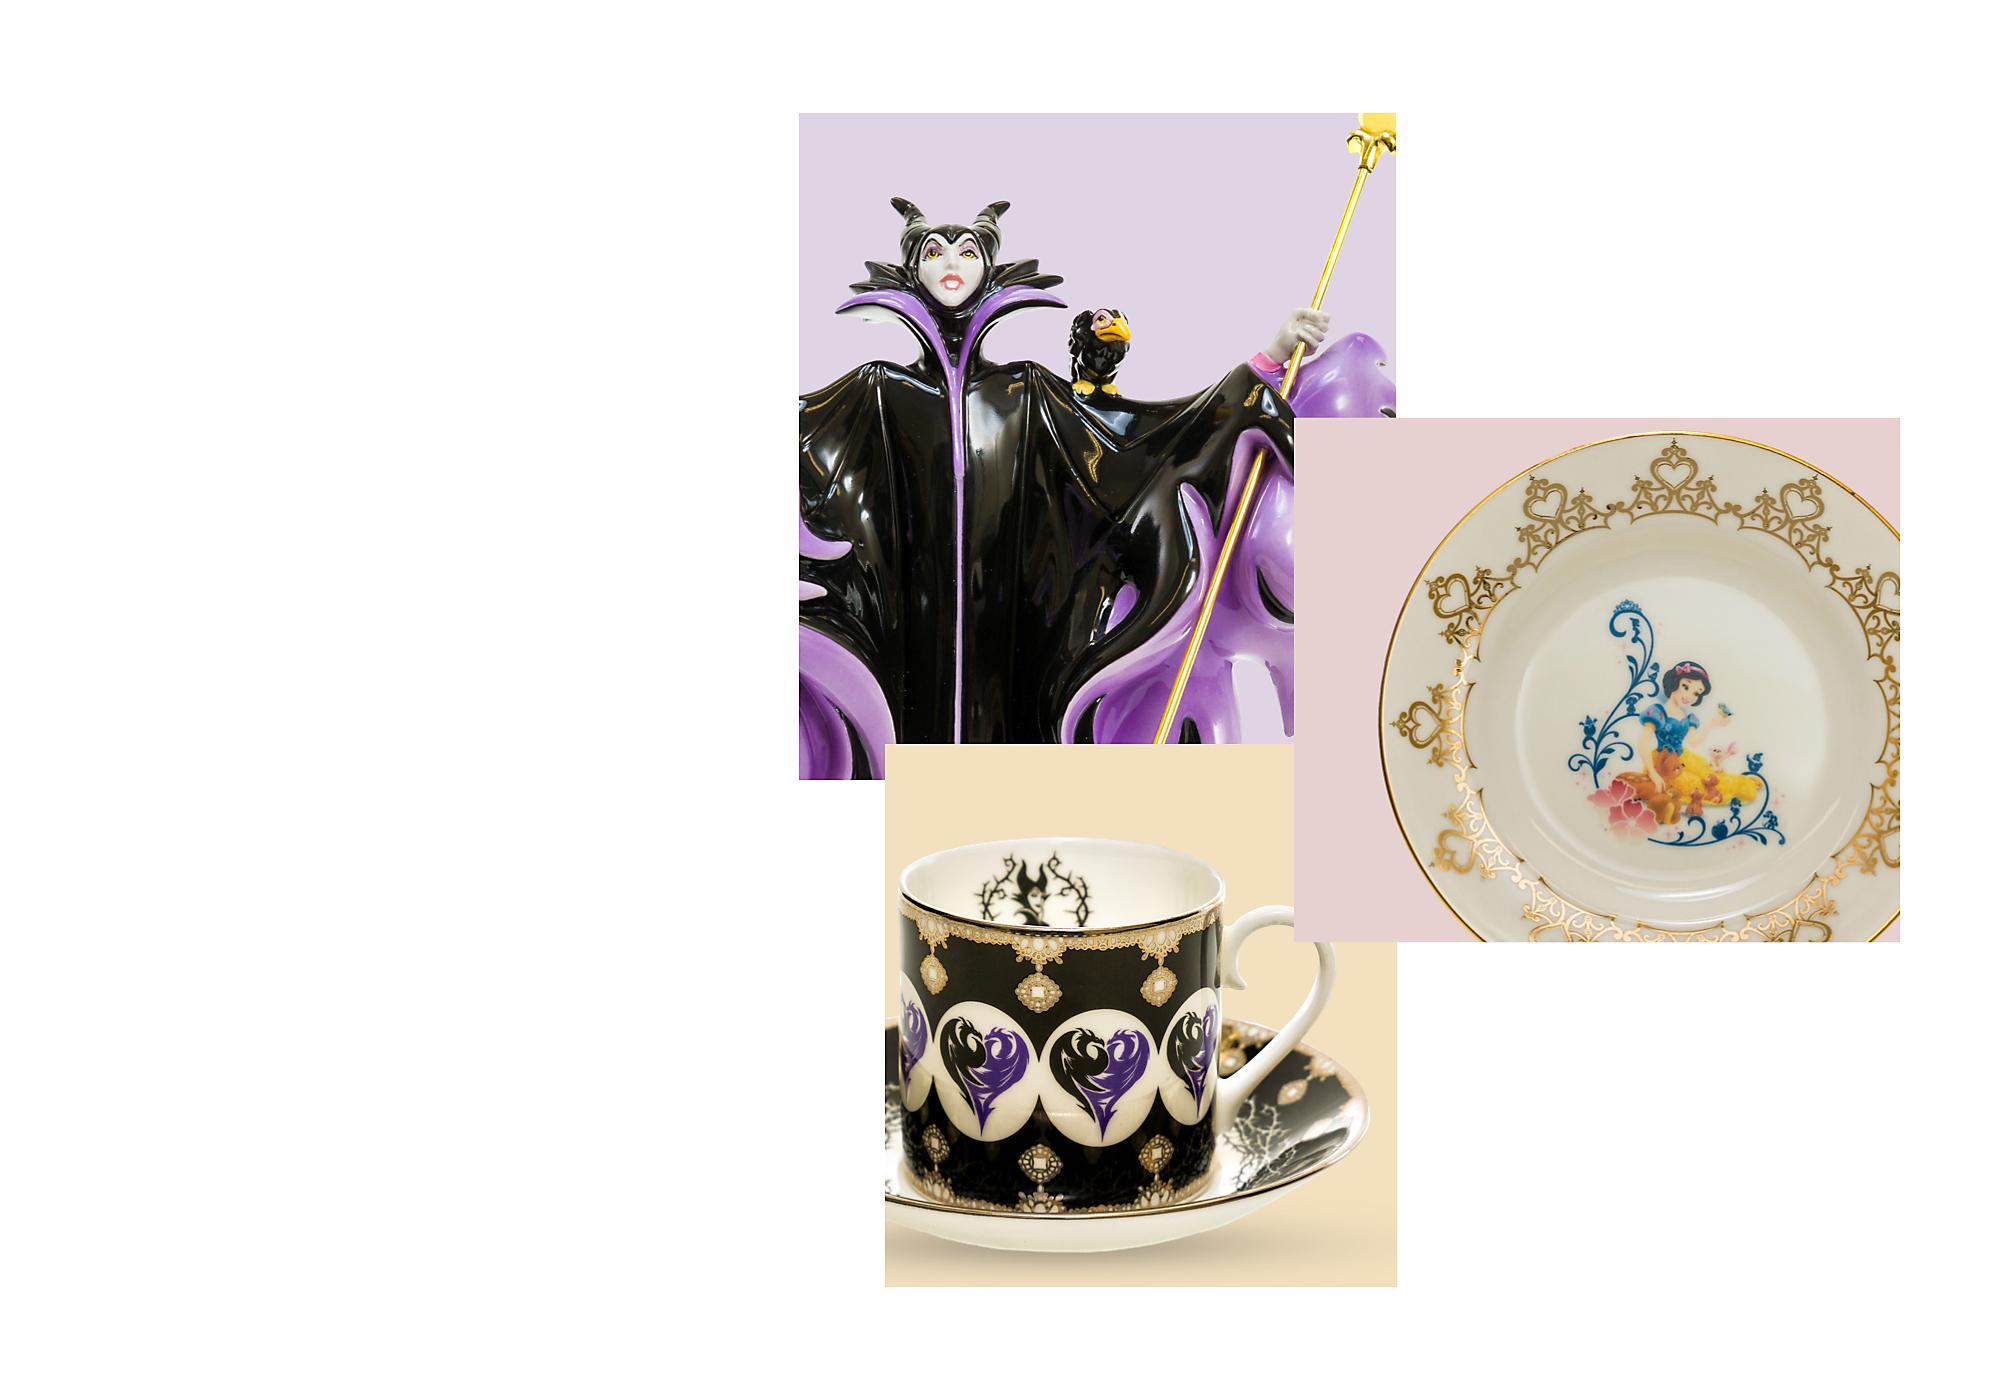 Classy Collectibles The English Ladies Co. is a range of bone china figurines and giftware with unique designs and high levels of detail in the model and painting. SHOP NOW